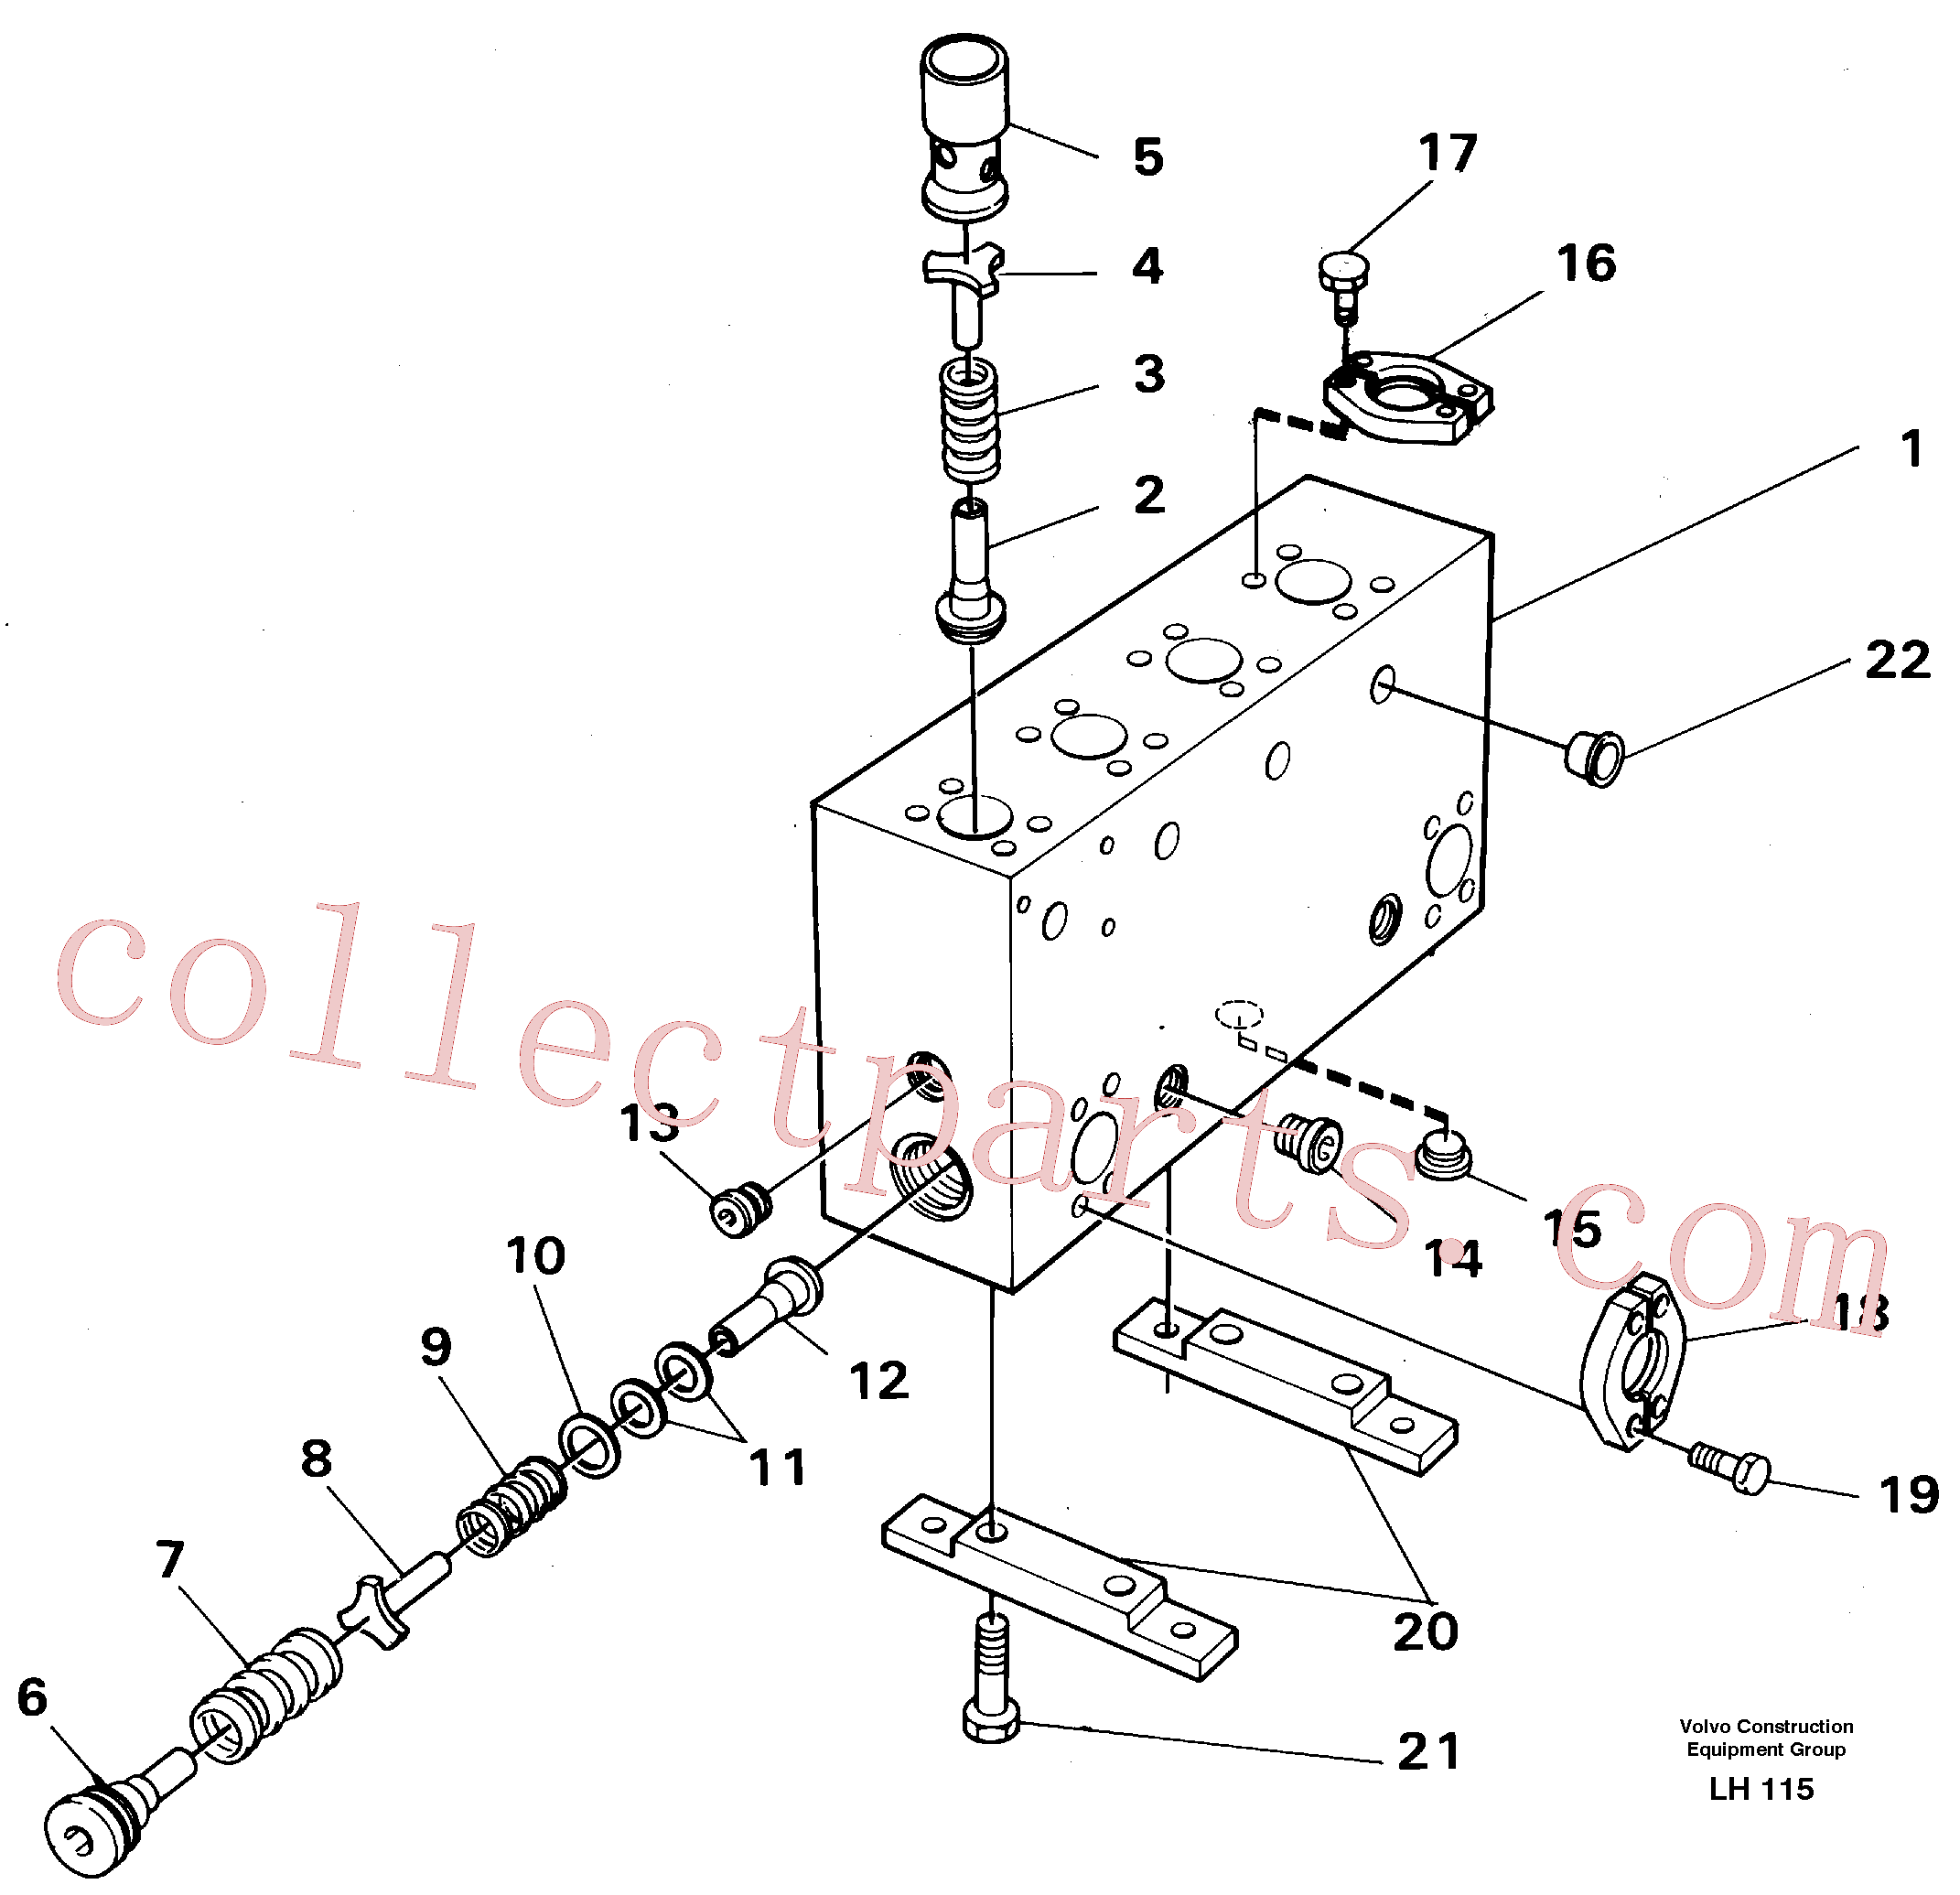 VOE14024900 for Volvo Connection board(LH115 assembly)